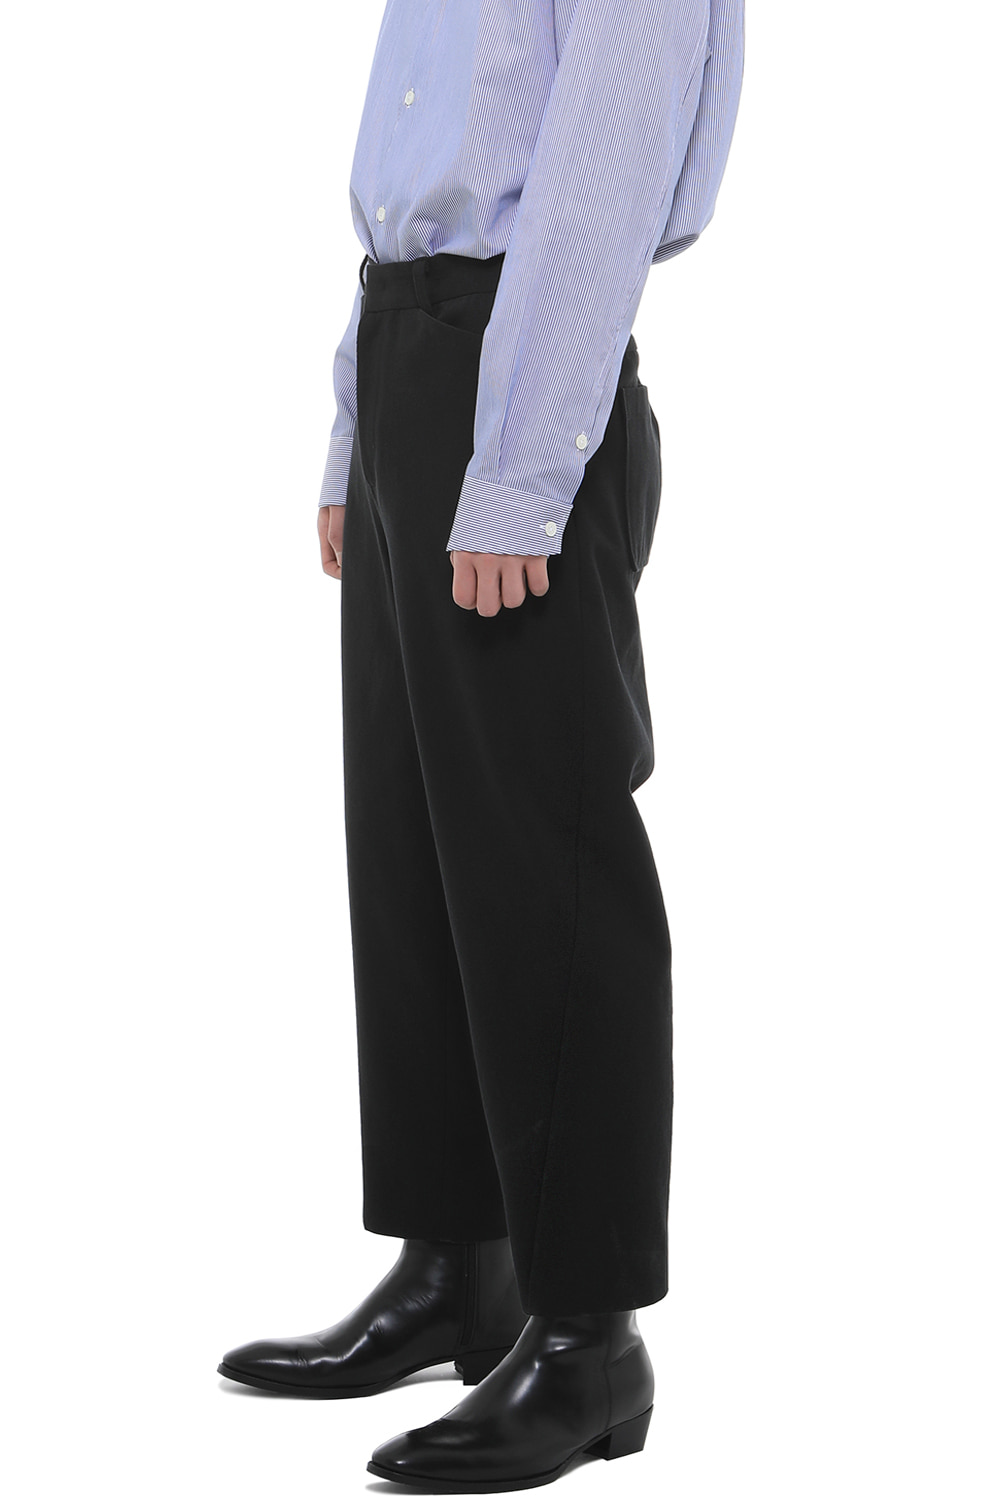 P008 / Twist Black Cotton Pants